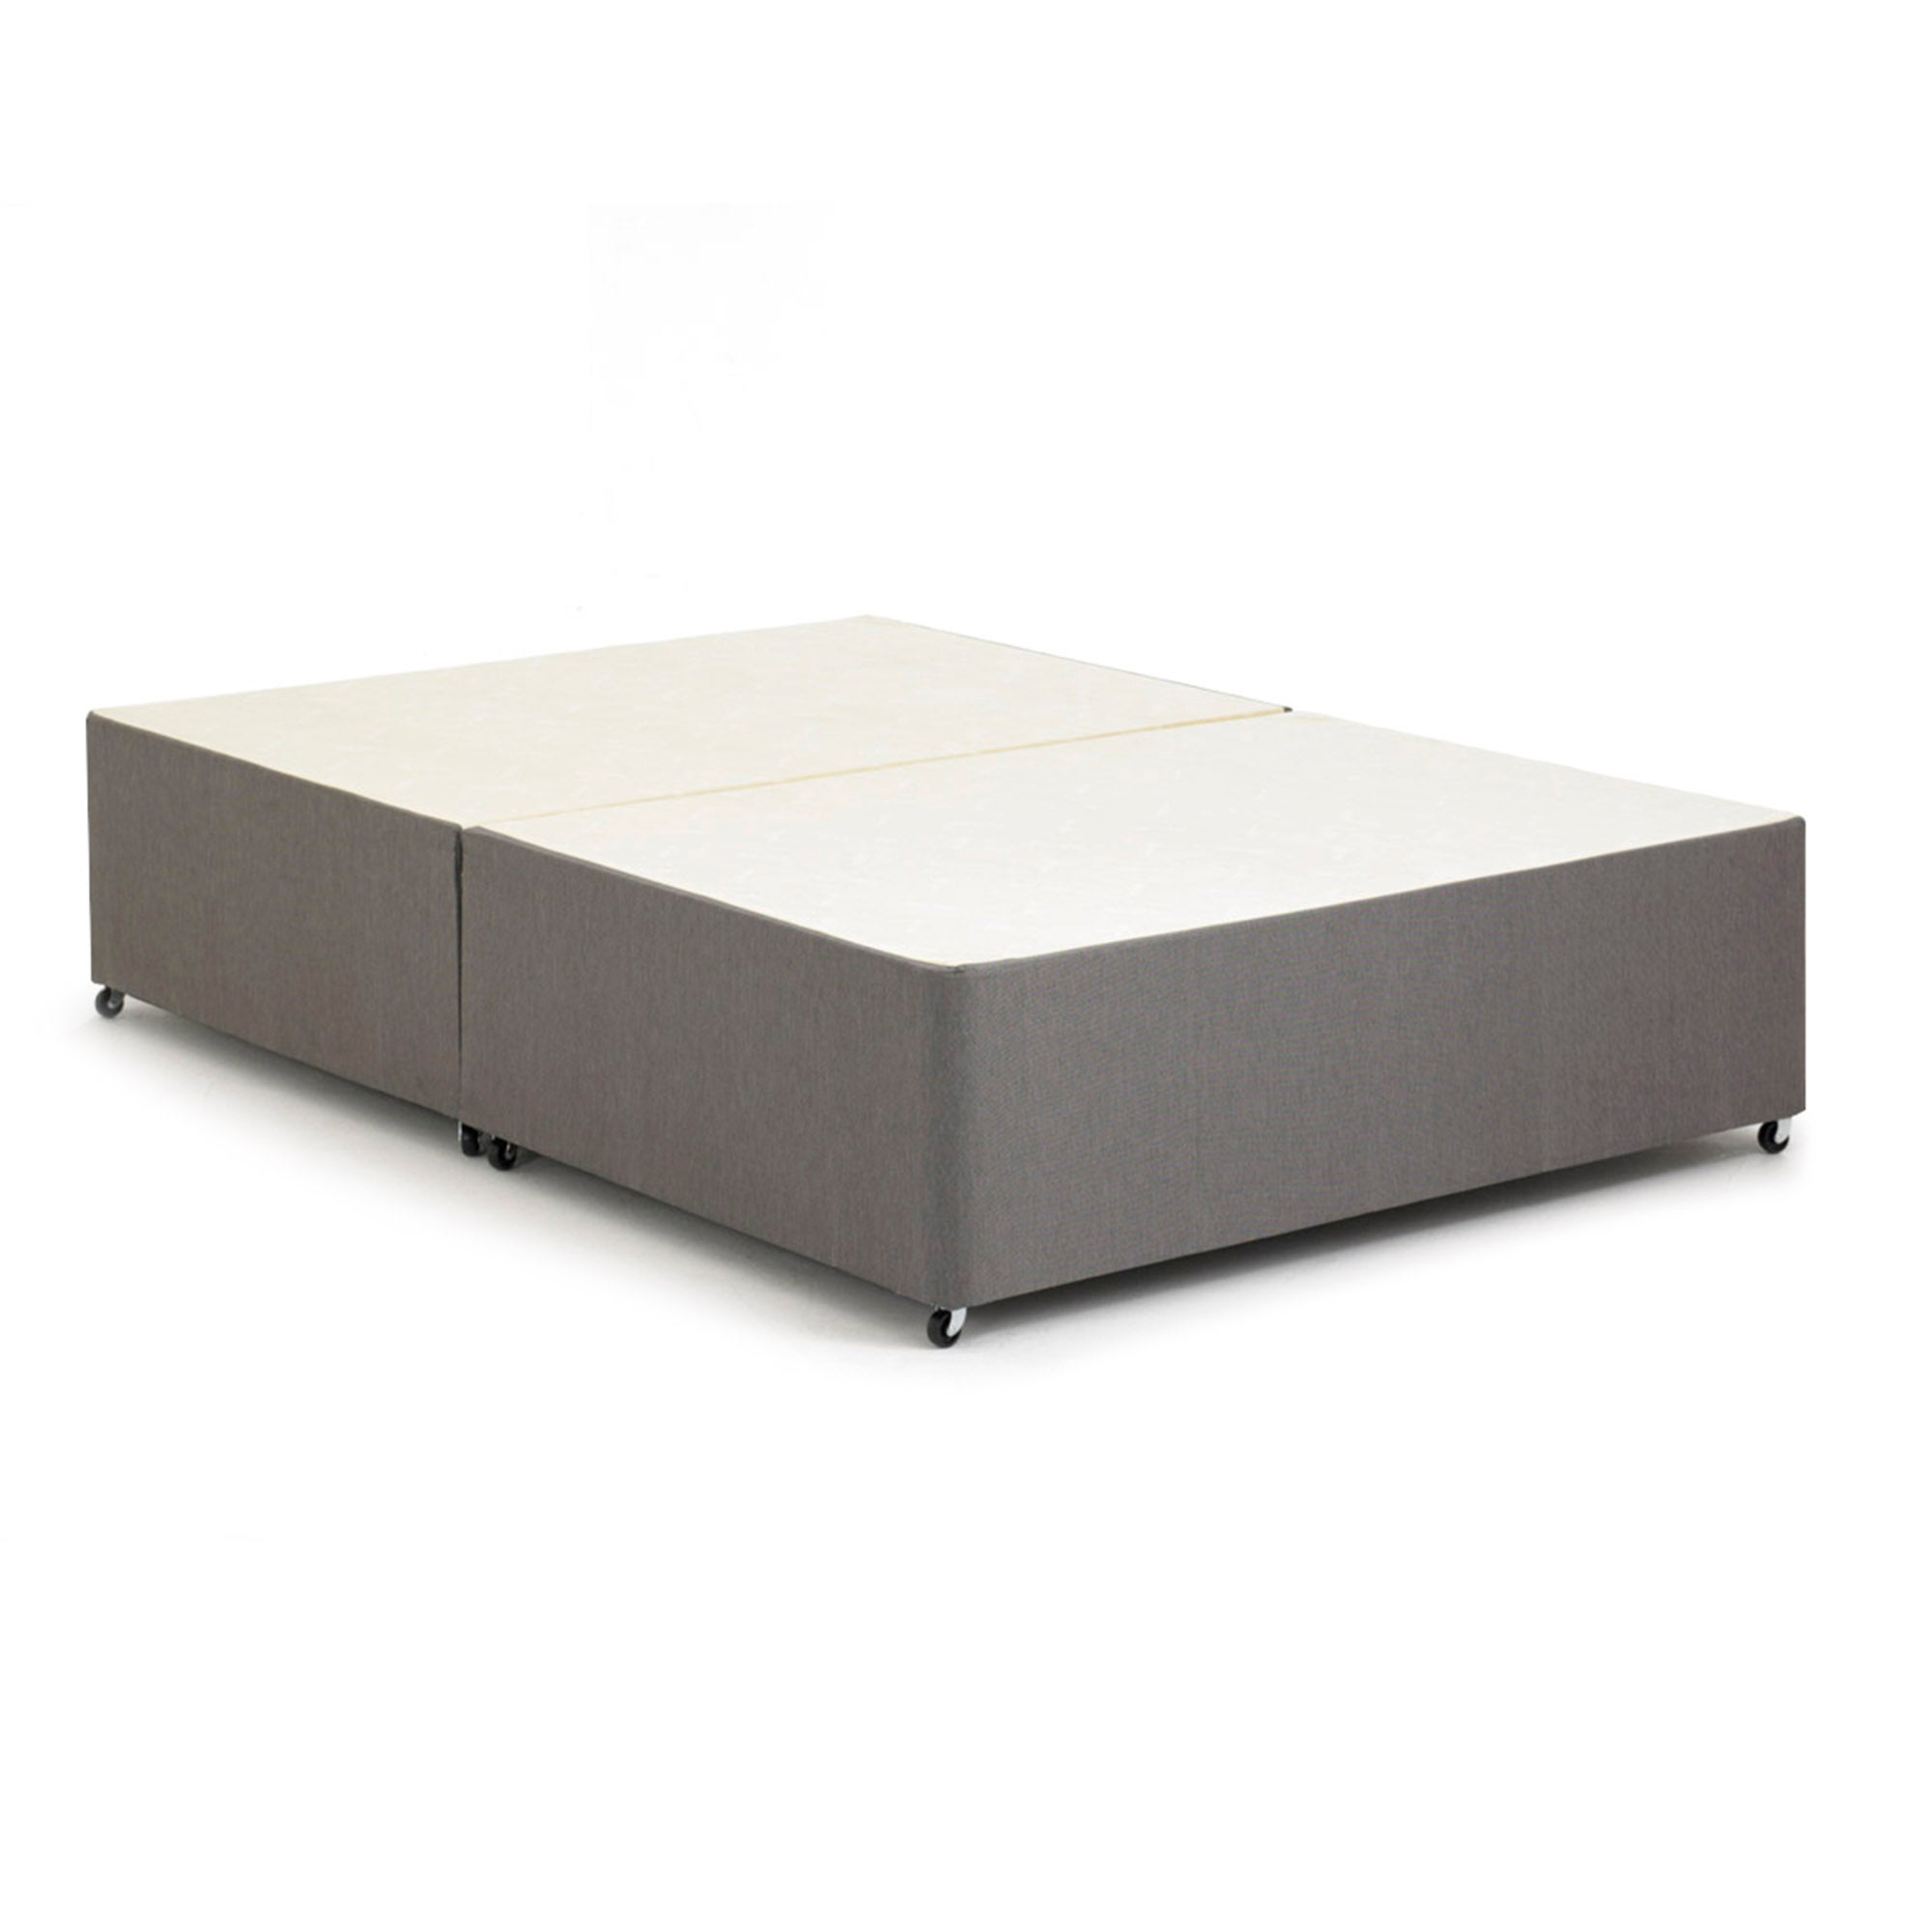 Padded Divan Base